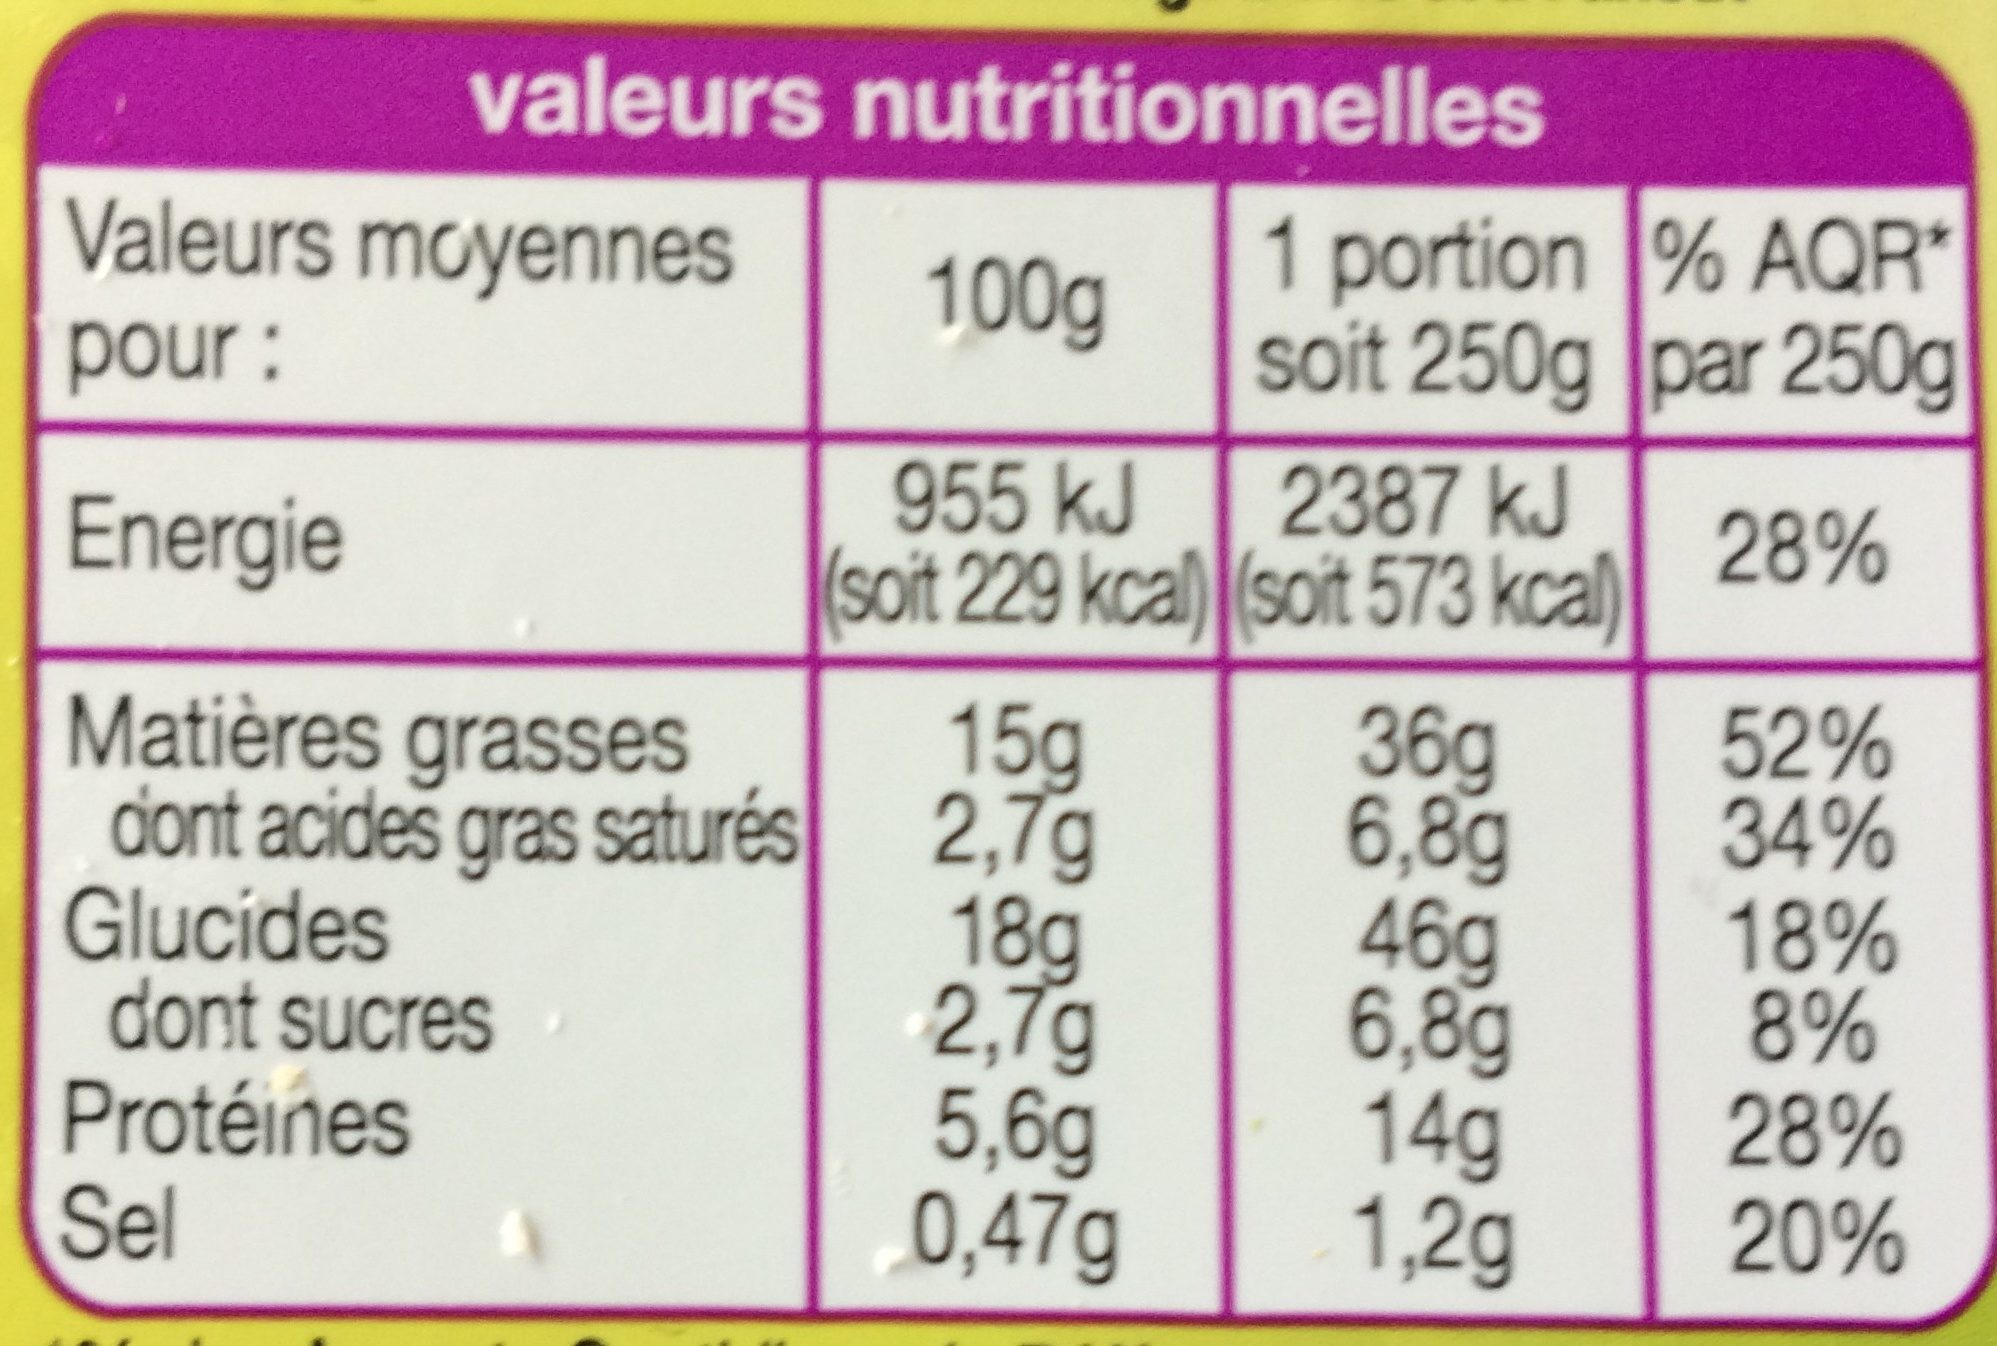 Salade & perles de couscous Falafels - Nutrition facts